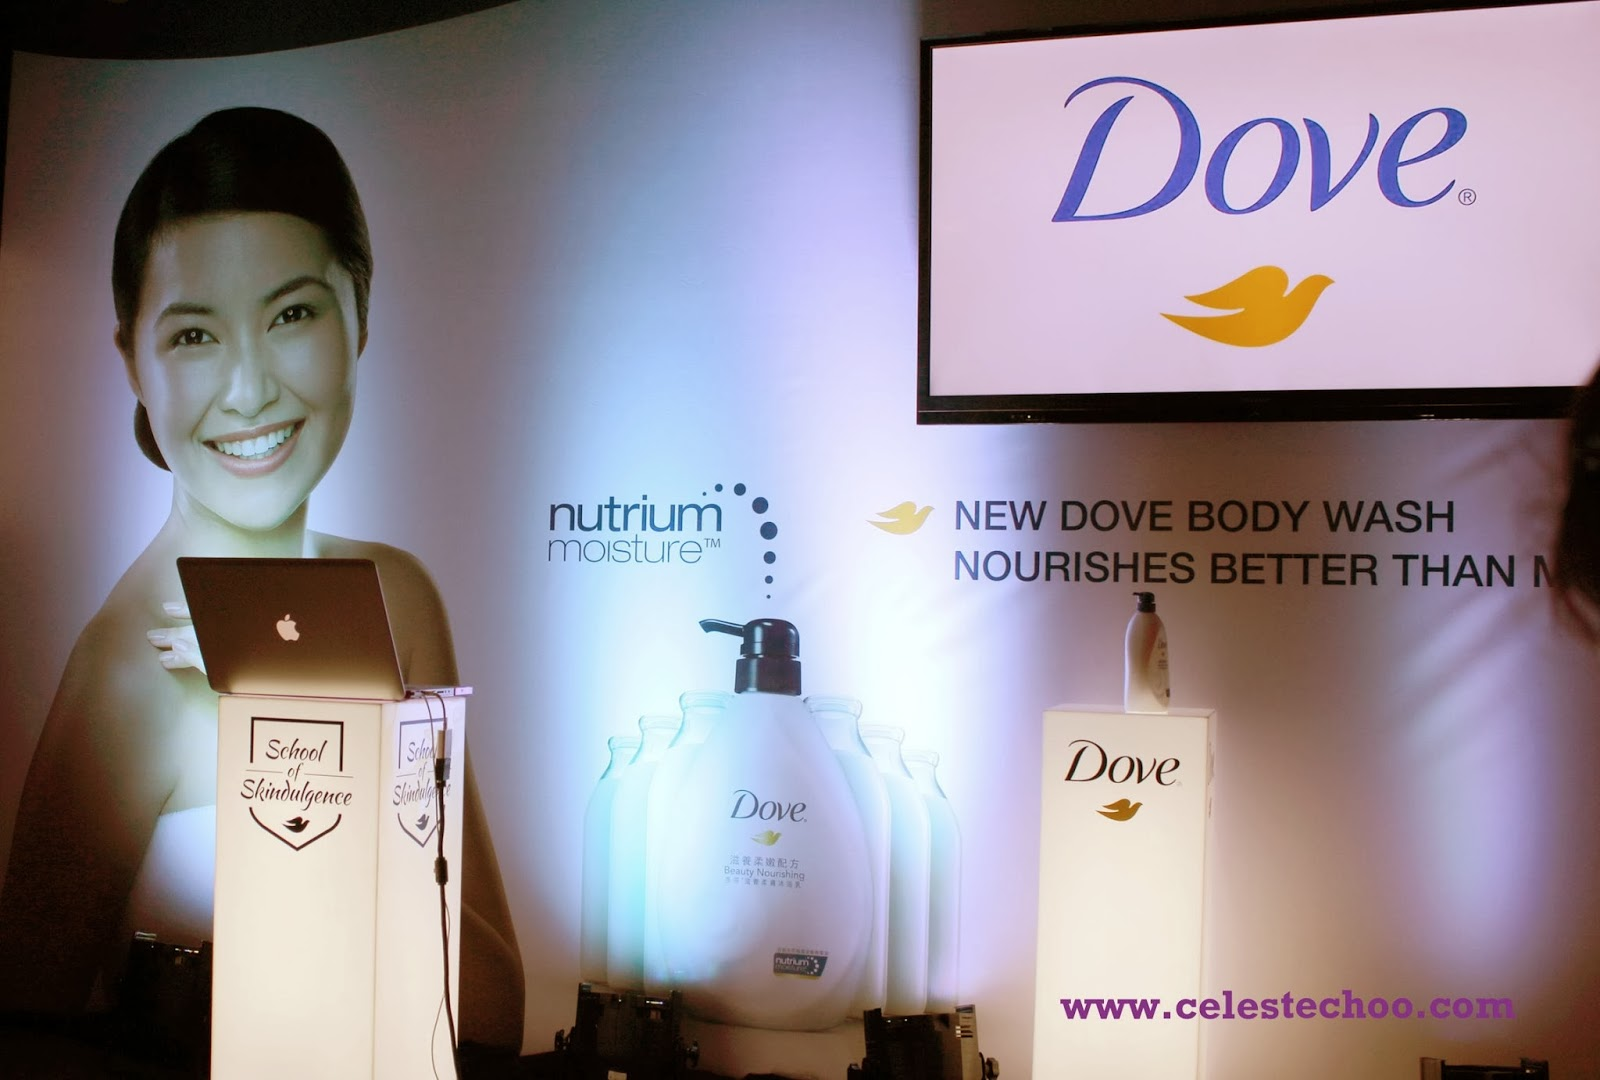 dove-school-of-skindulgence-body-wash-launch